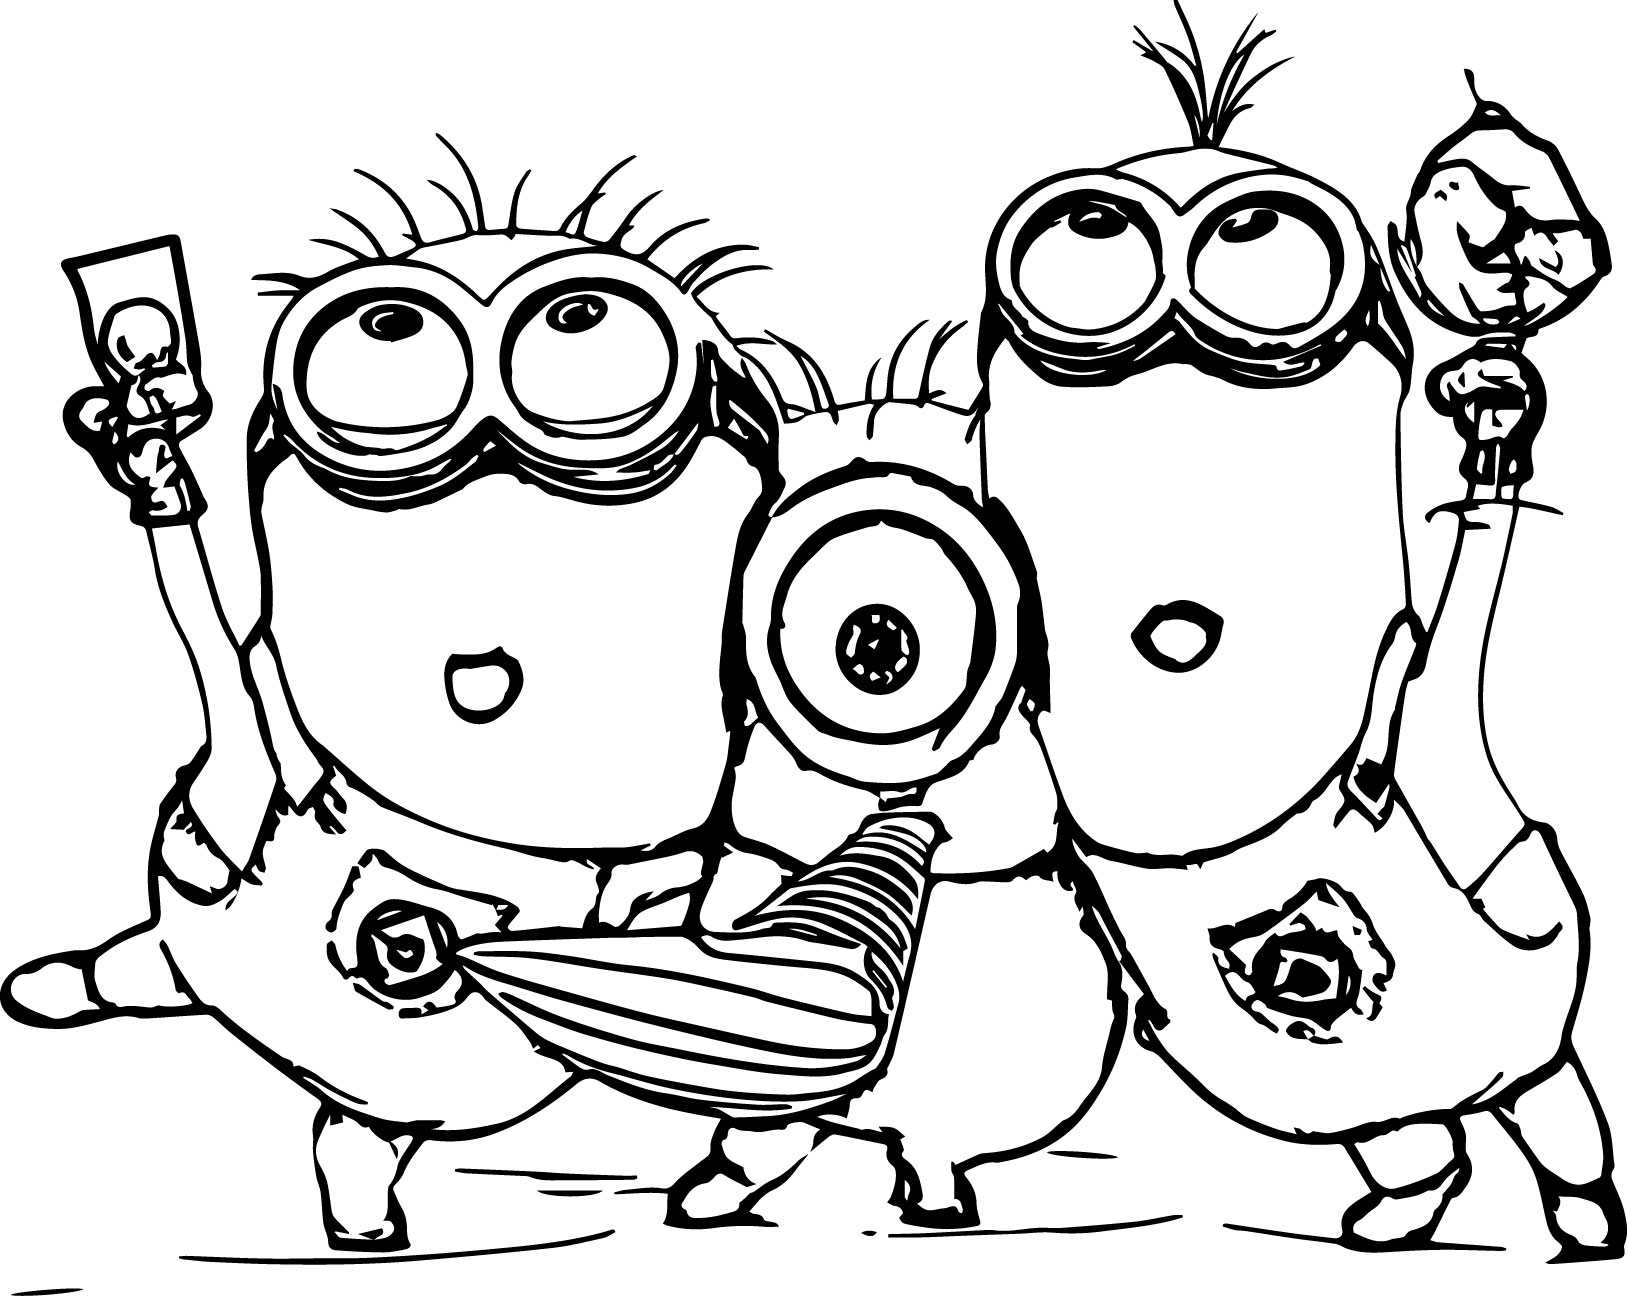 minions coloring pages banana split - photo#36